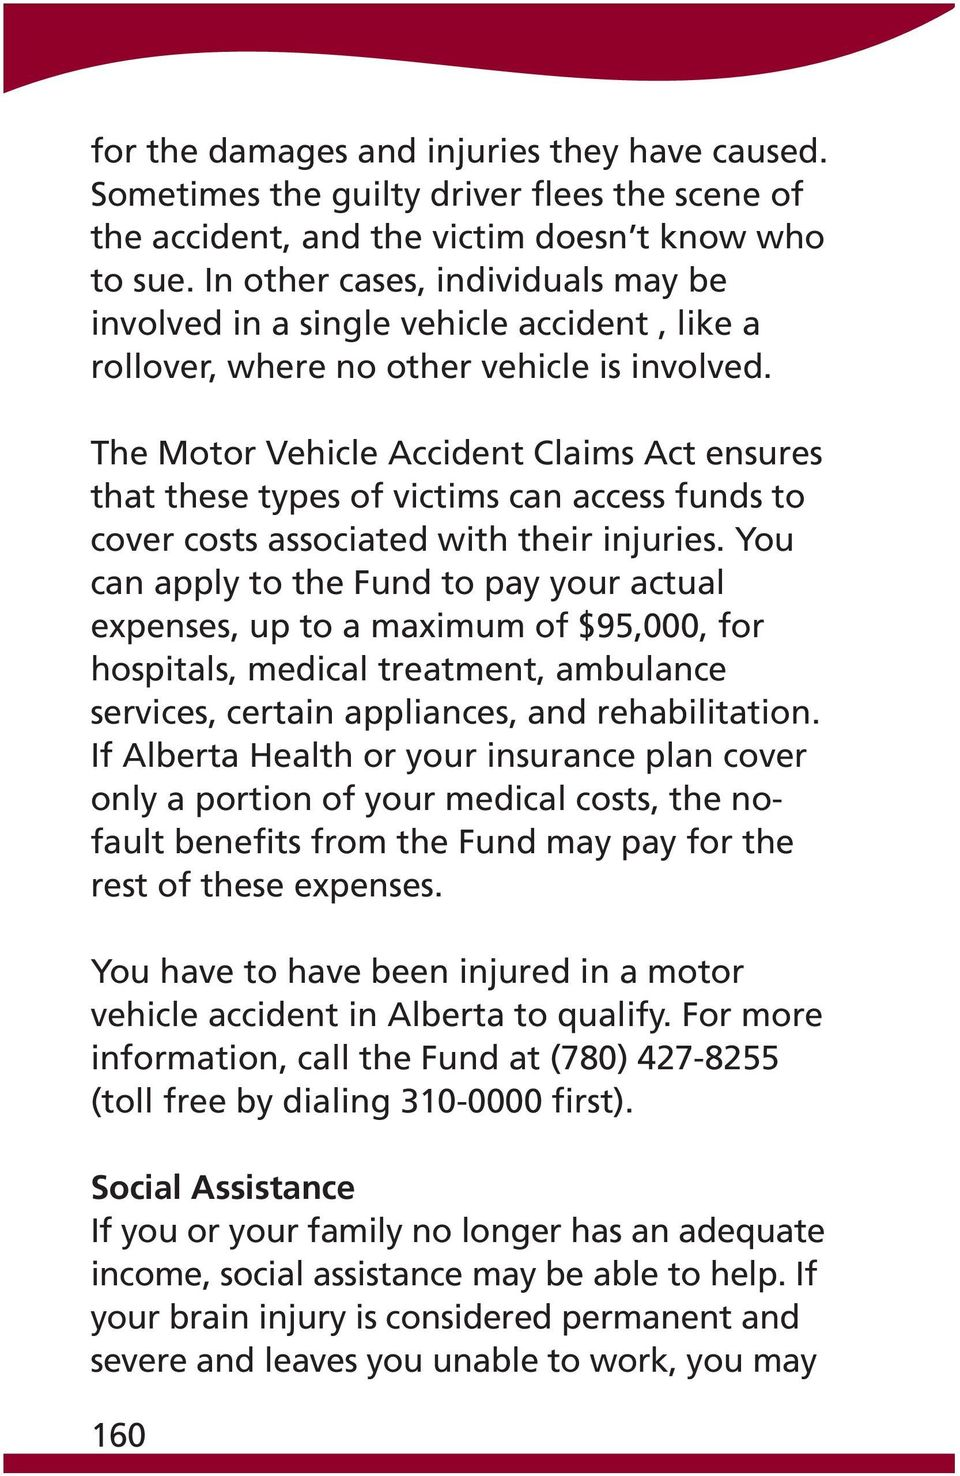 The Motor Vehicle Accident Claims Act ensures that these types of victims can access funds to cover costs associated with their injuries.